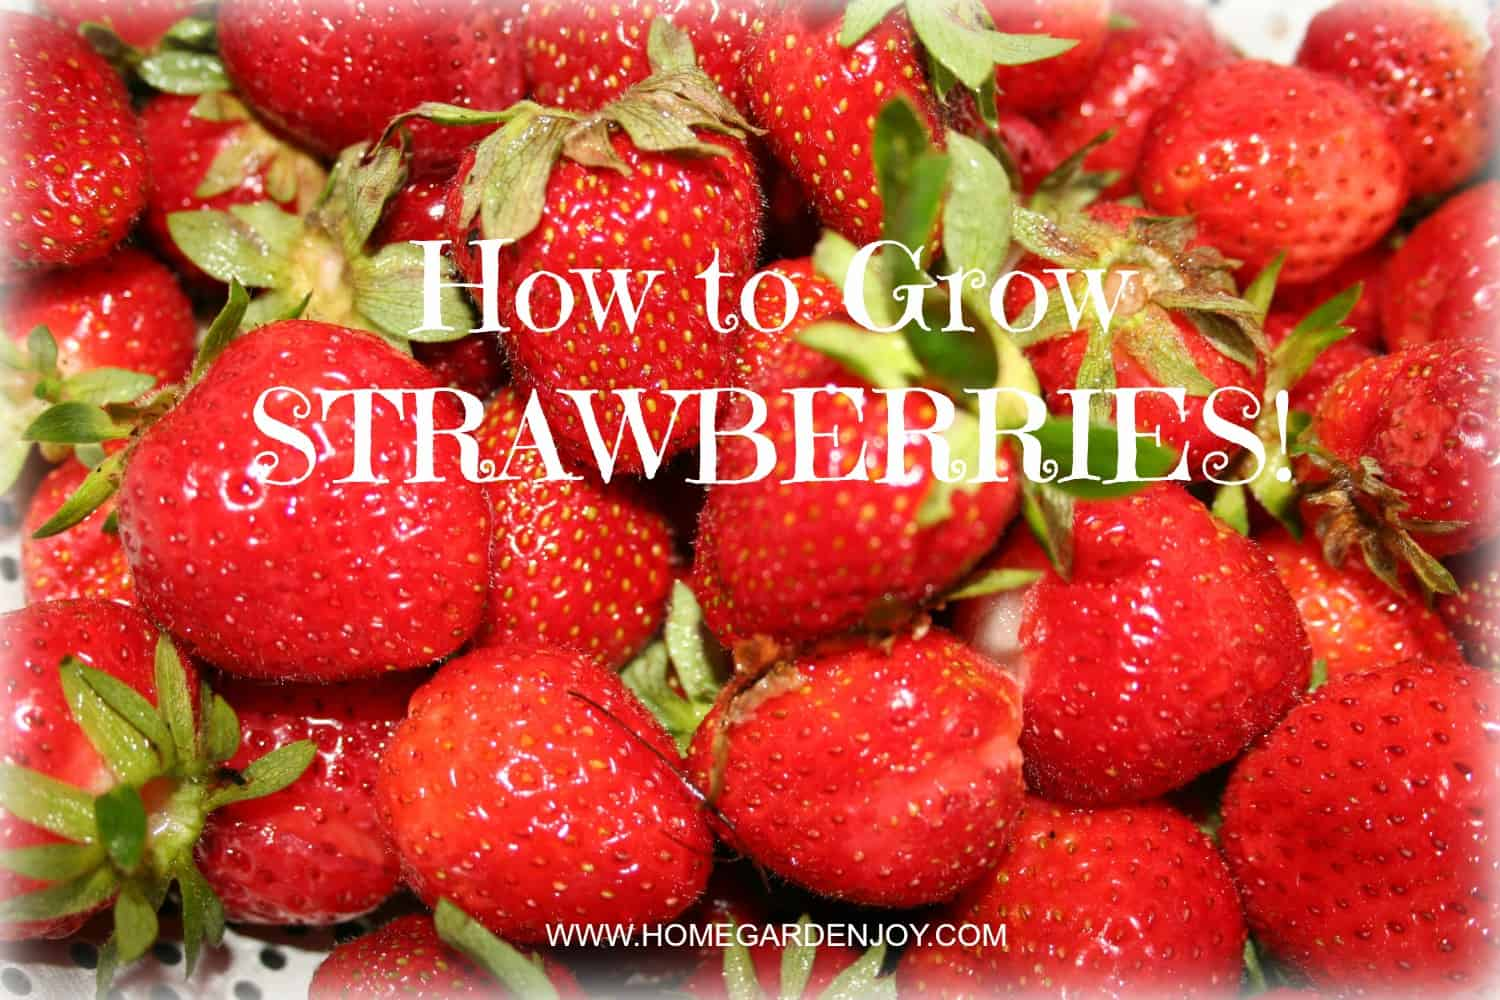 Next to homemade strawberry jam, freezing strawberries is the best way to preserve their flavor and juiciness. You want to make sure that the berries don't clump together but remain loose so that you can easily take out just the amount you want.